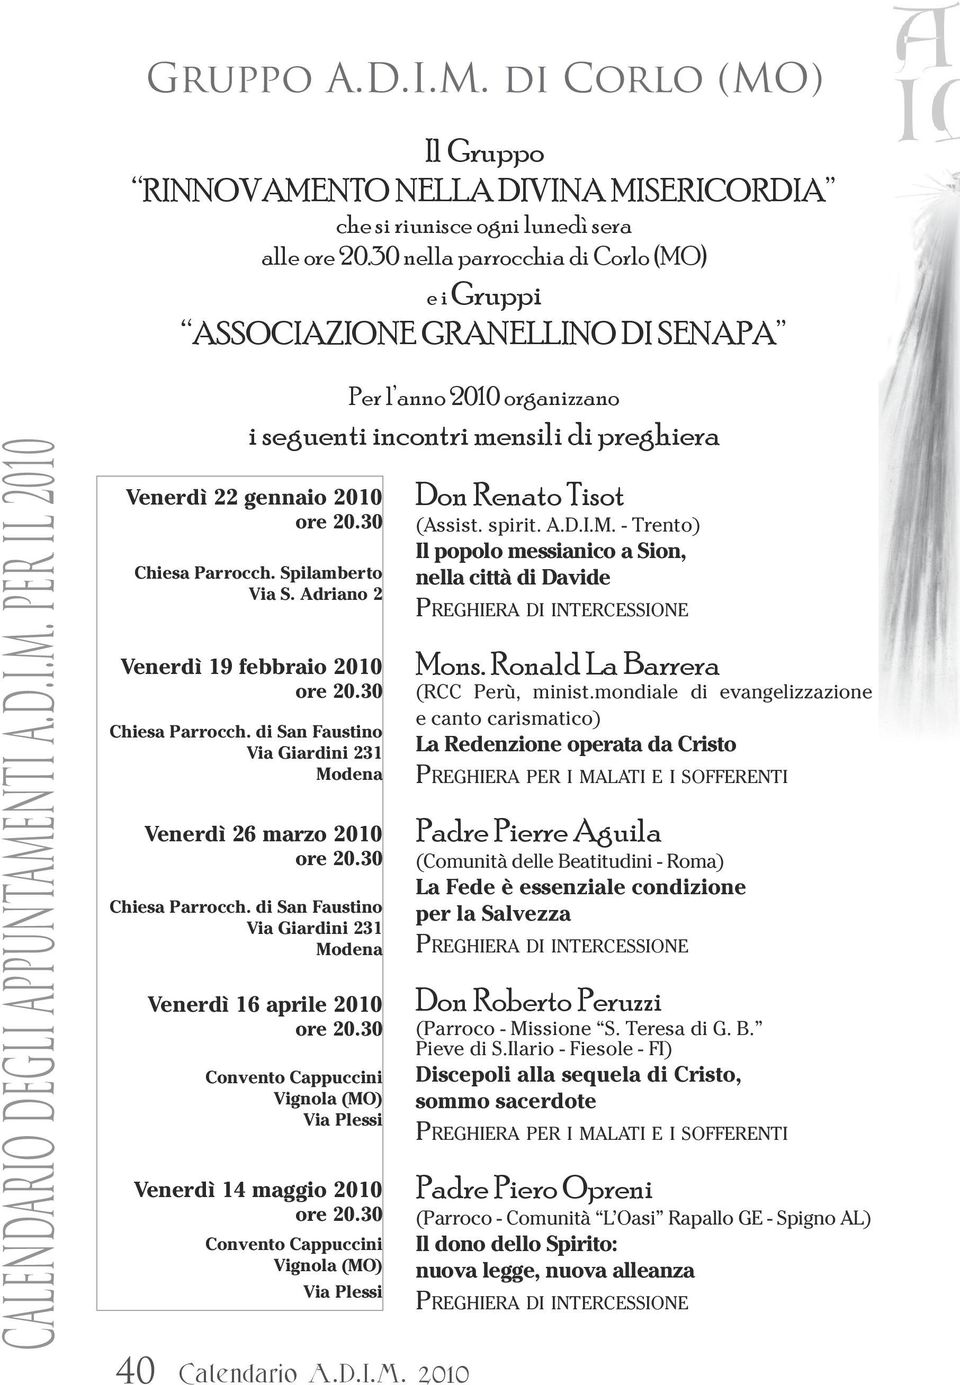 San Davide Calendario.Alleanza Dives In Misericordia Calendario Di Rinnovamento